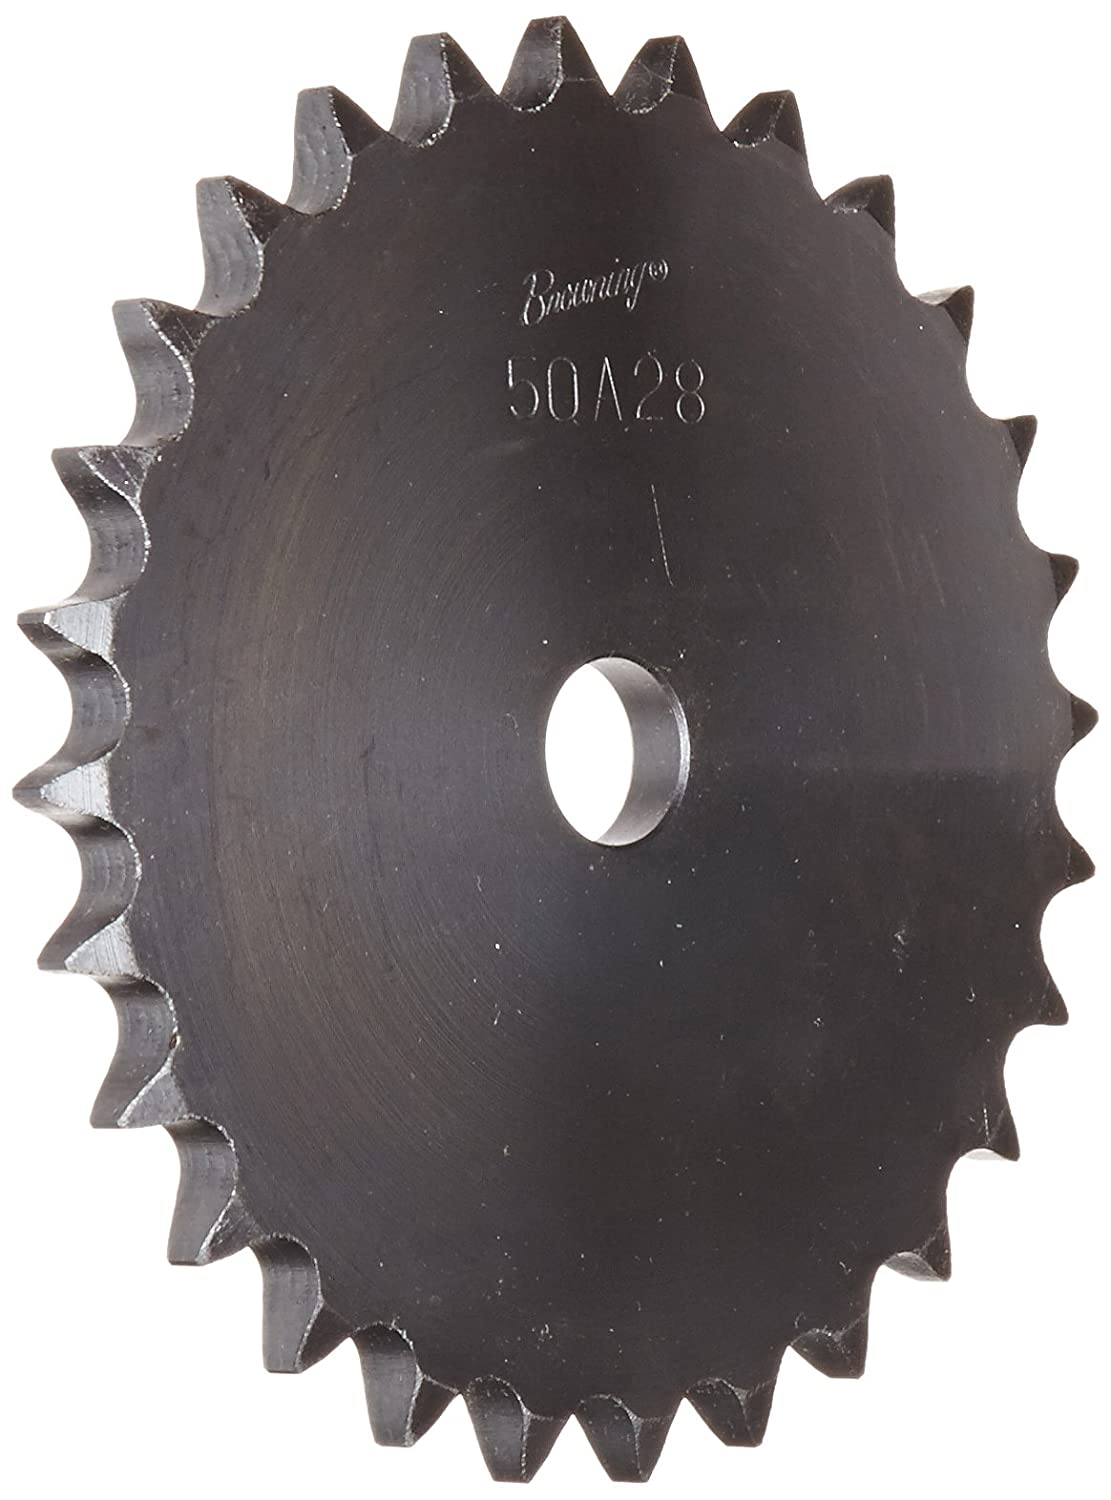 28 Teeth Type A Hub Single Strand Browning 50A28 Plate Roller Chain Sprocket 3//4 Stocked Bore Steel